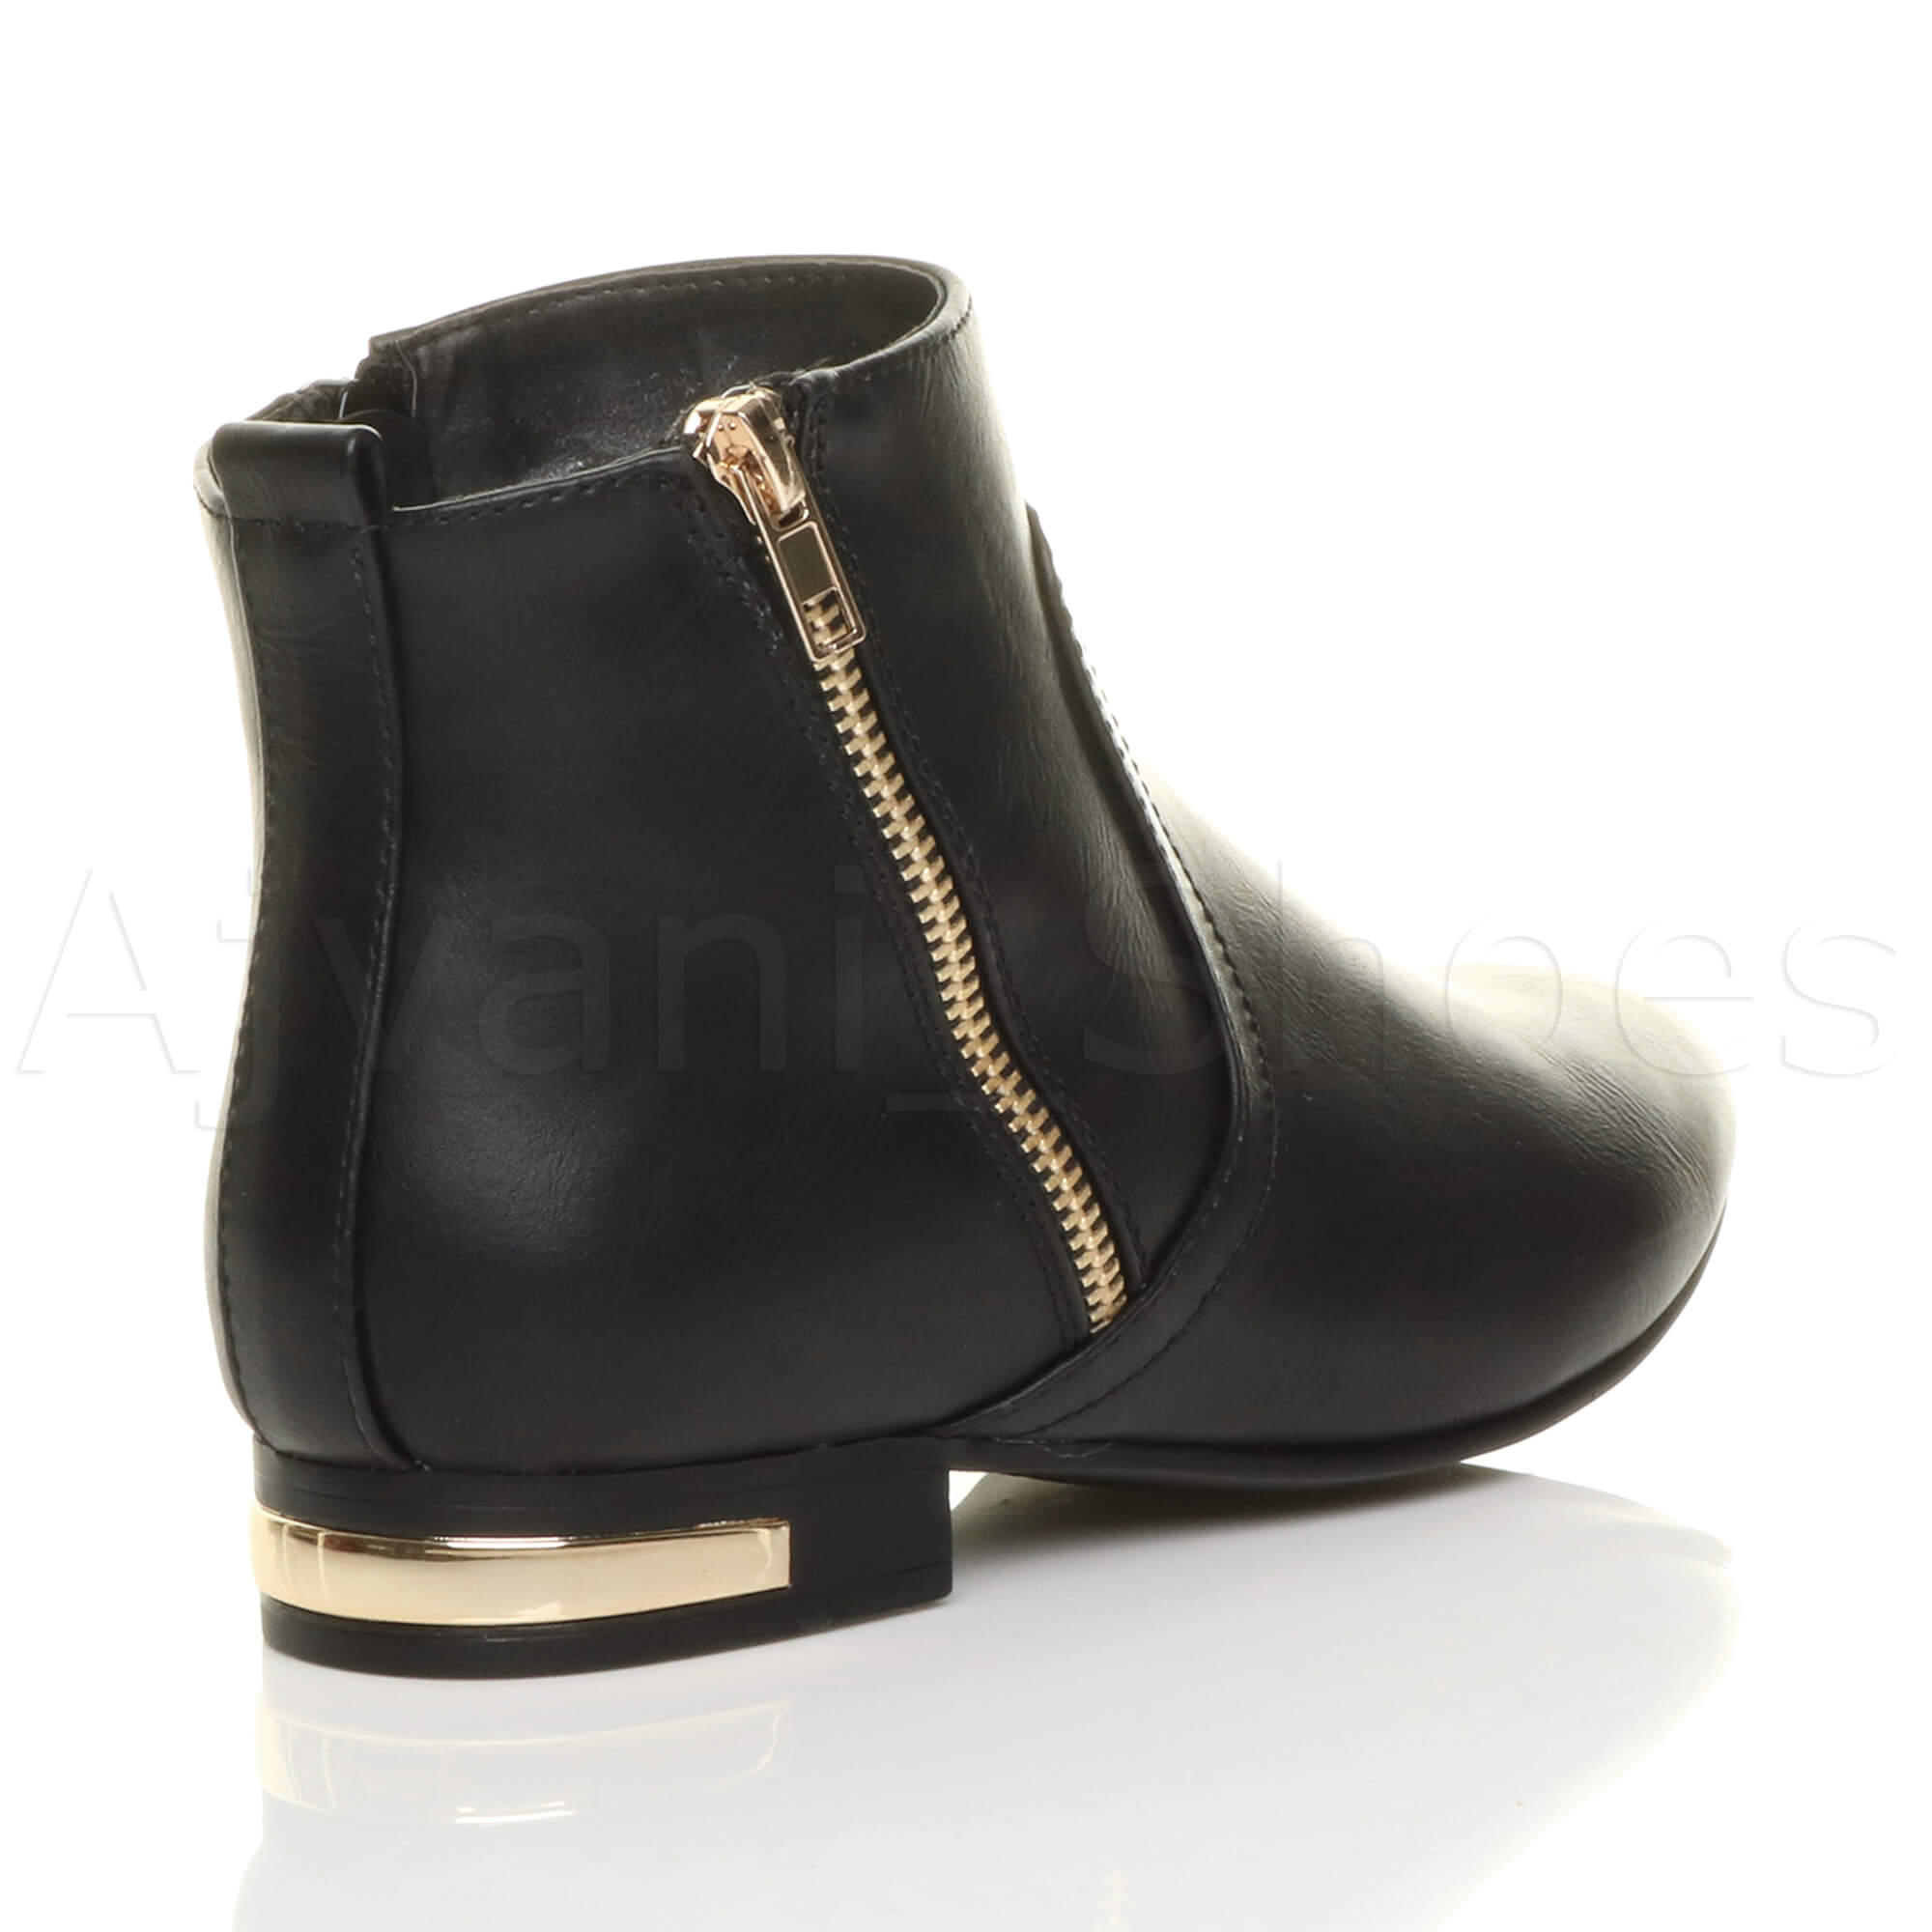 WOMENS-LADIES-LOW-HEEL-GOLD-ZIP-CONTRAST-RIDING-PIXIE-ANKLE-BOOTS-BOOTIES-SIZE thumbnail 5